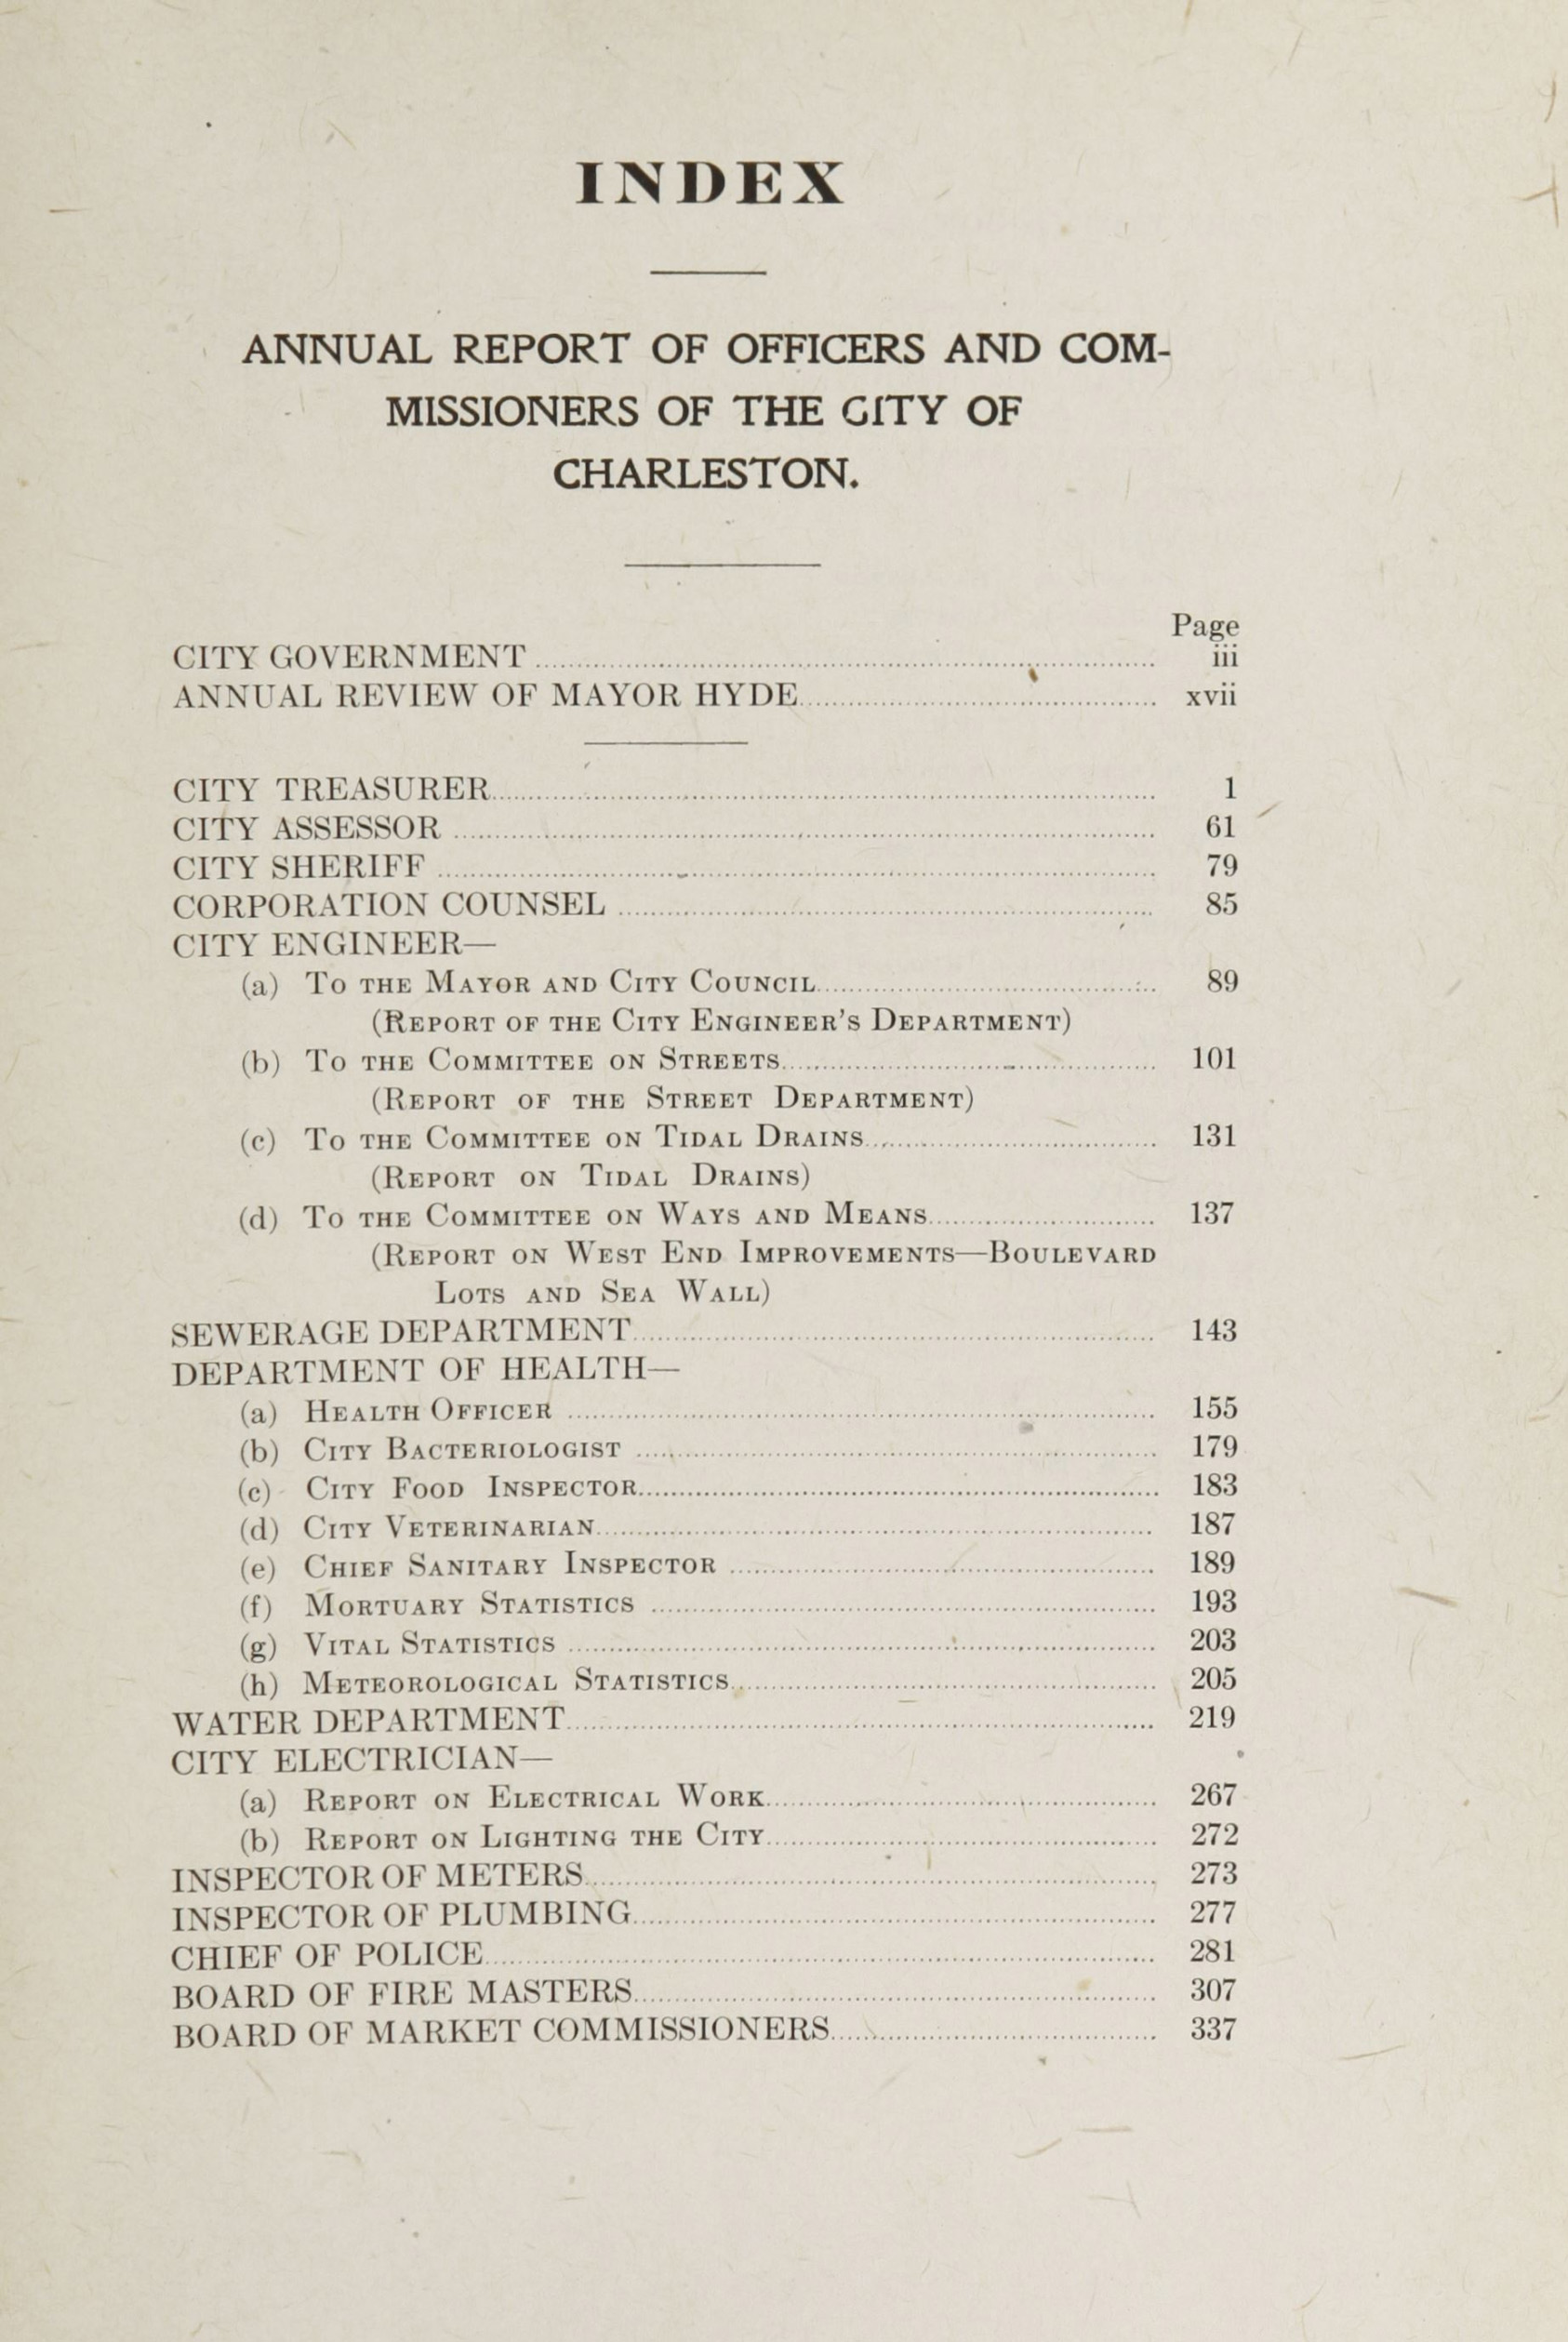 Charleston Yearbook, 1918, page xxi